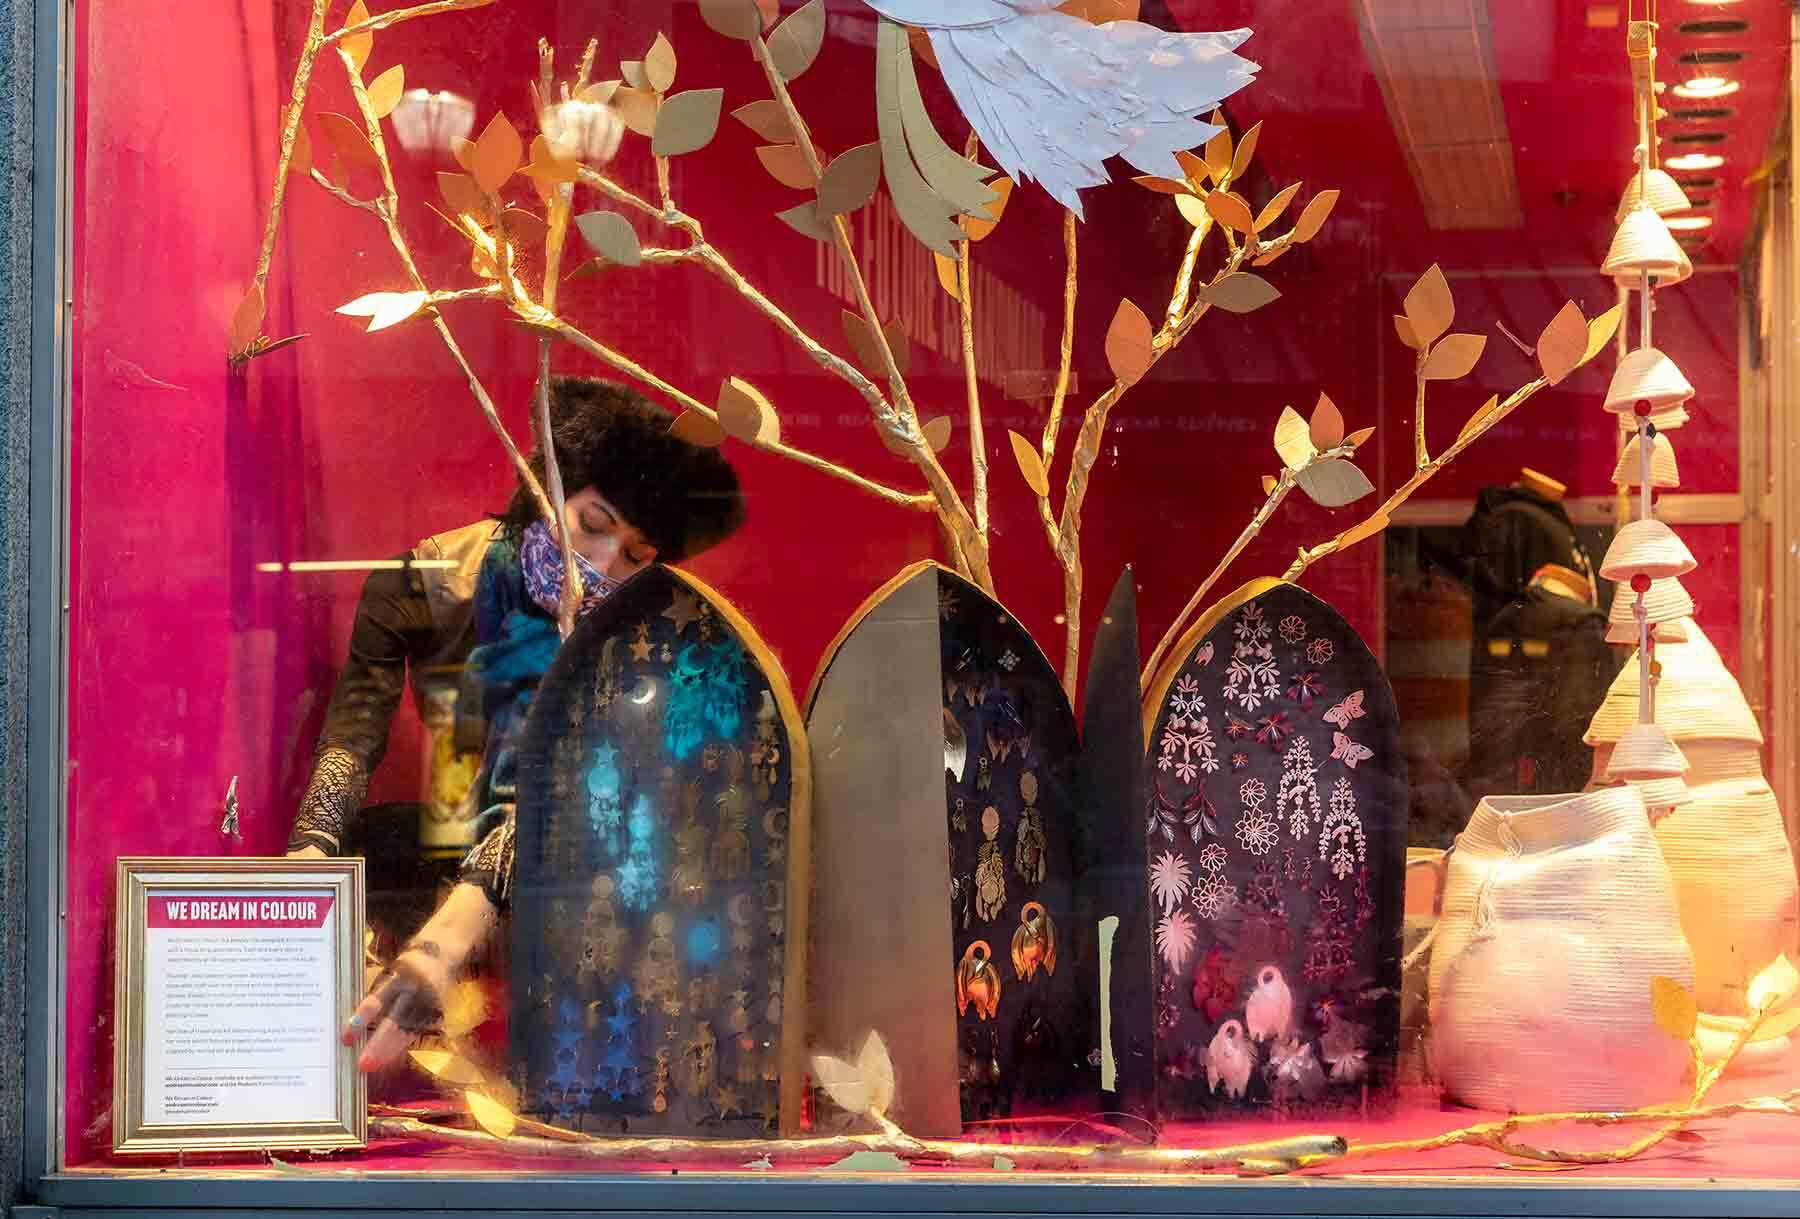 The PEM shop windows with bright pink walls and ornaments on display